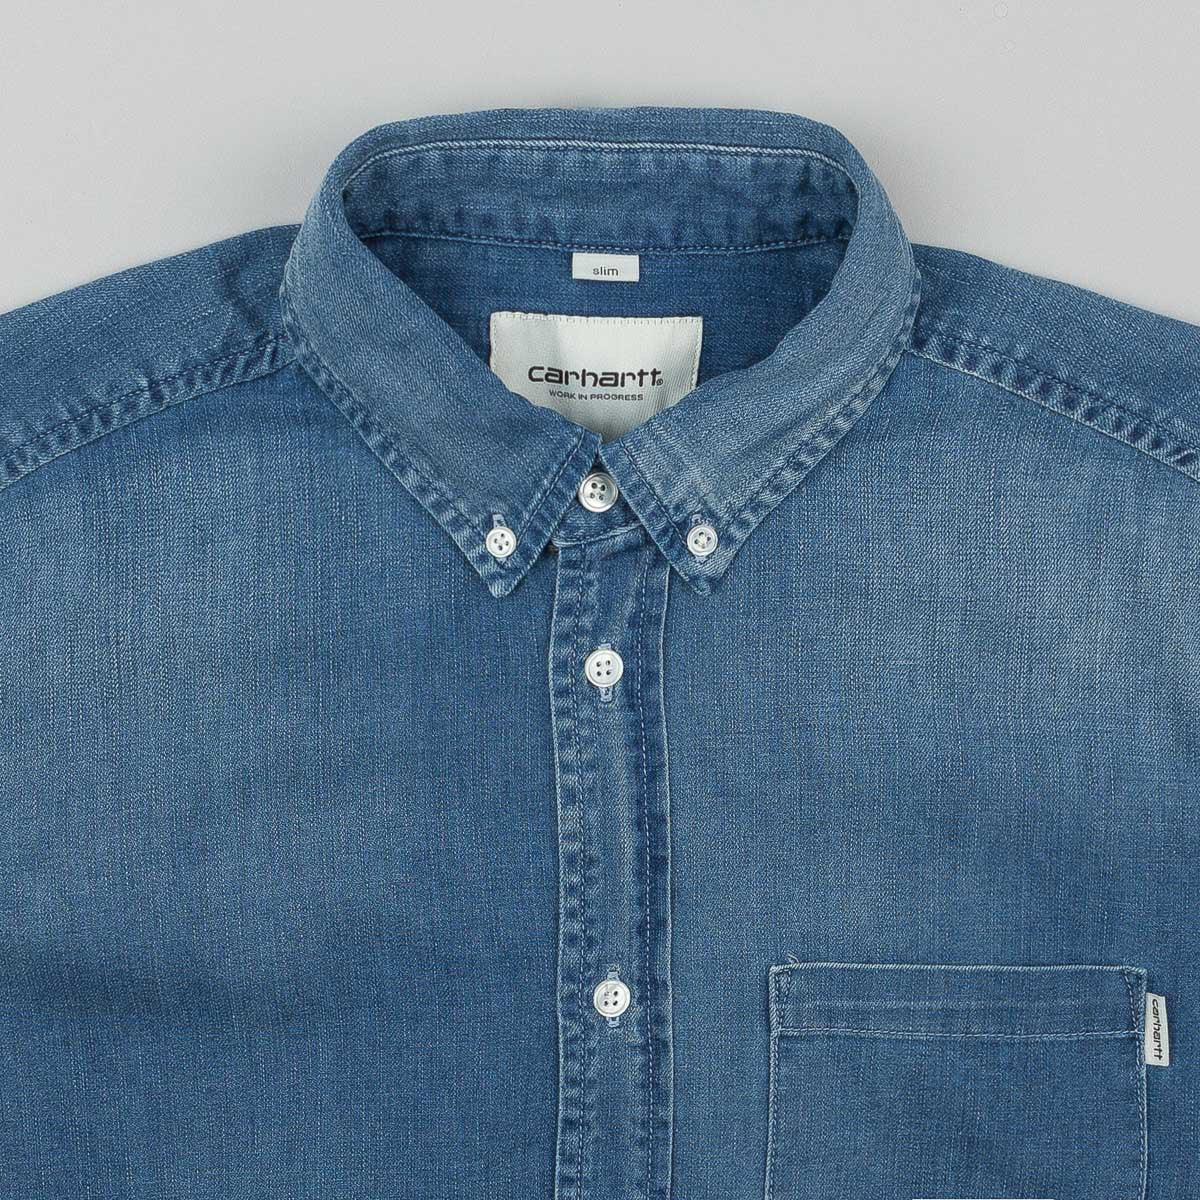 Carhartt Civil Denim Long Sleeve Shirt - Blue (Fidelity Washed)